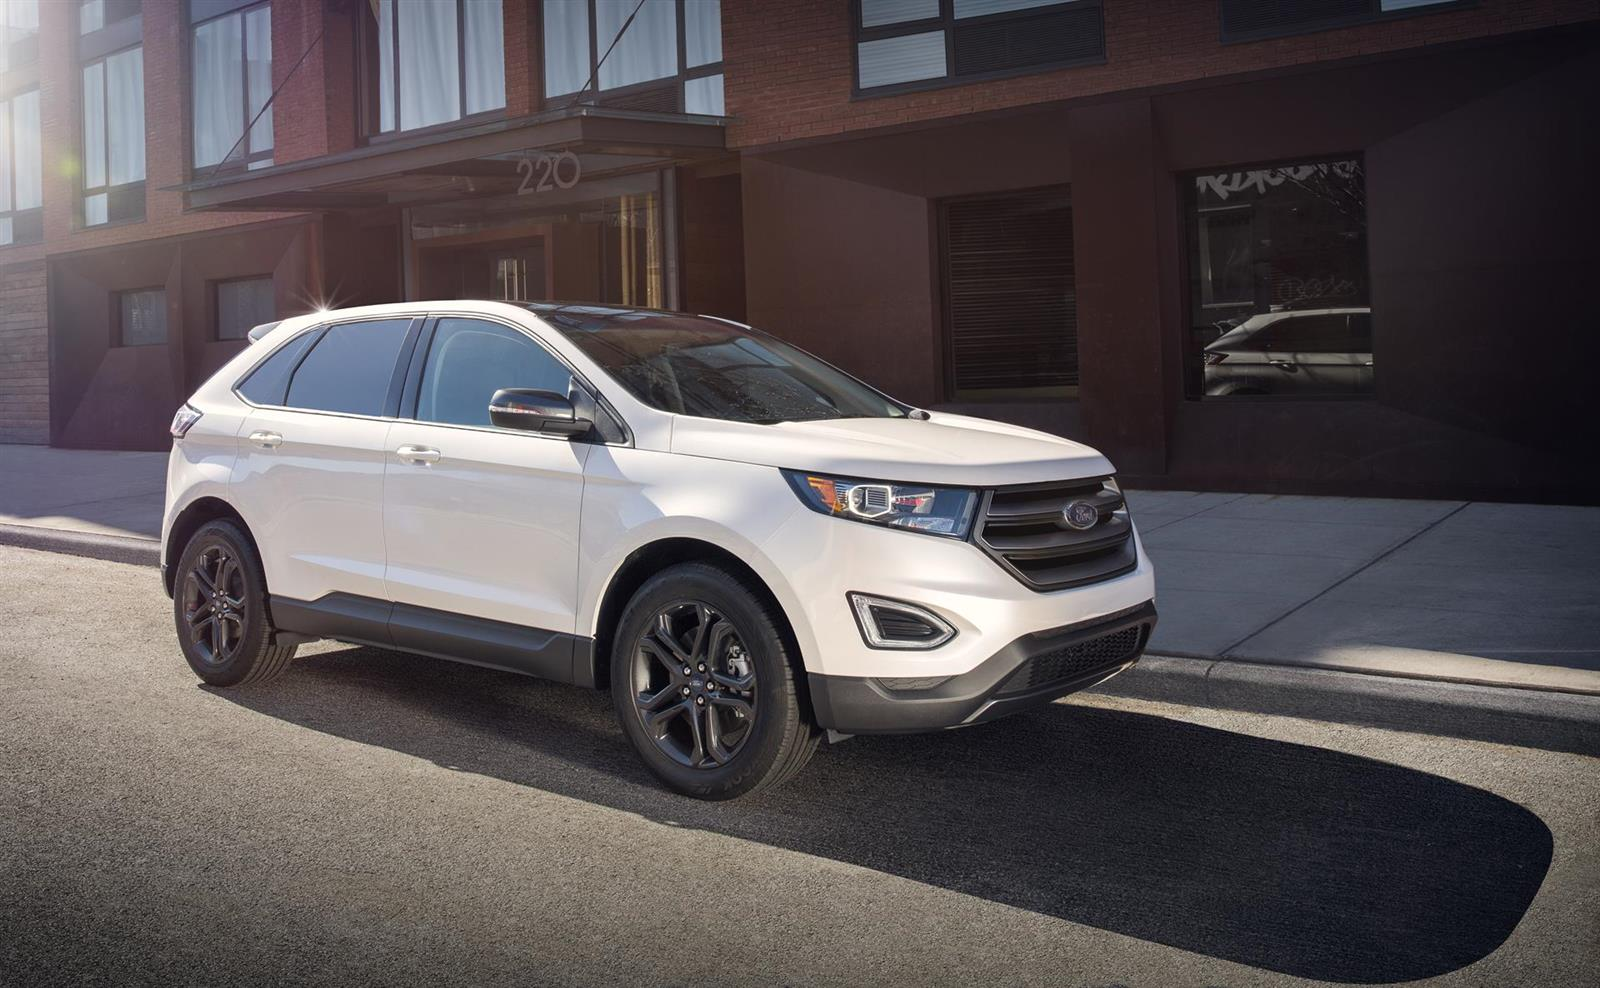 Linked Ford Edge Reviews Ratings Prices Consumer Reports Ford Edge Reviews Ratings Prices Consumer Reports Ford Edge Reviews And Rating Motor